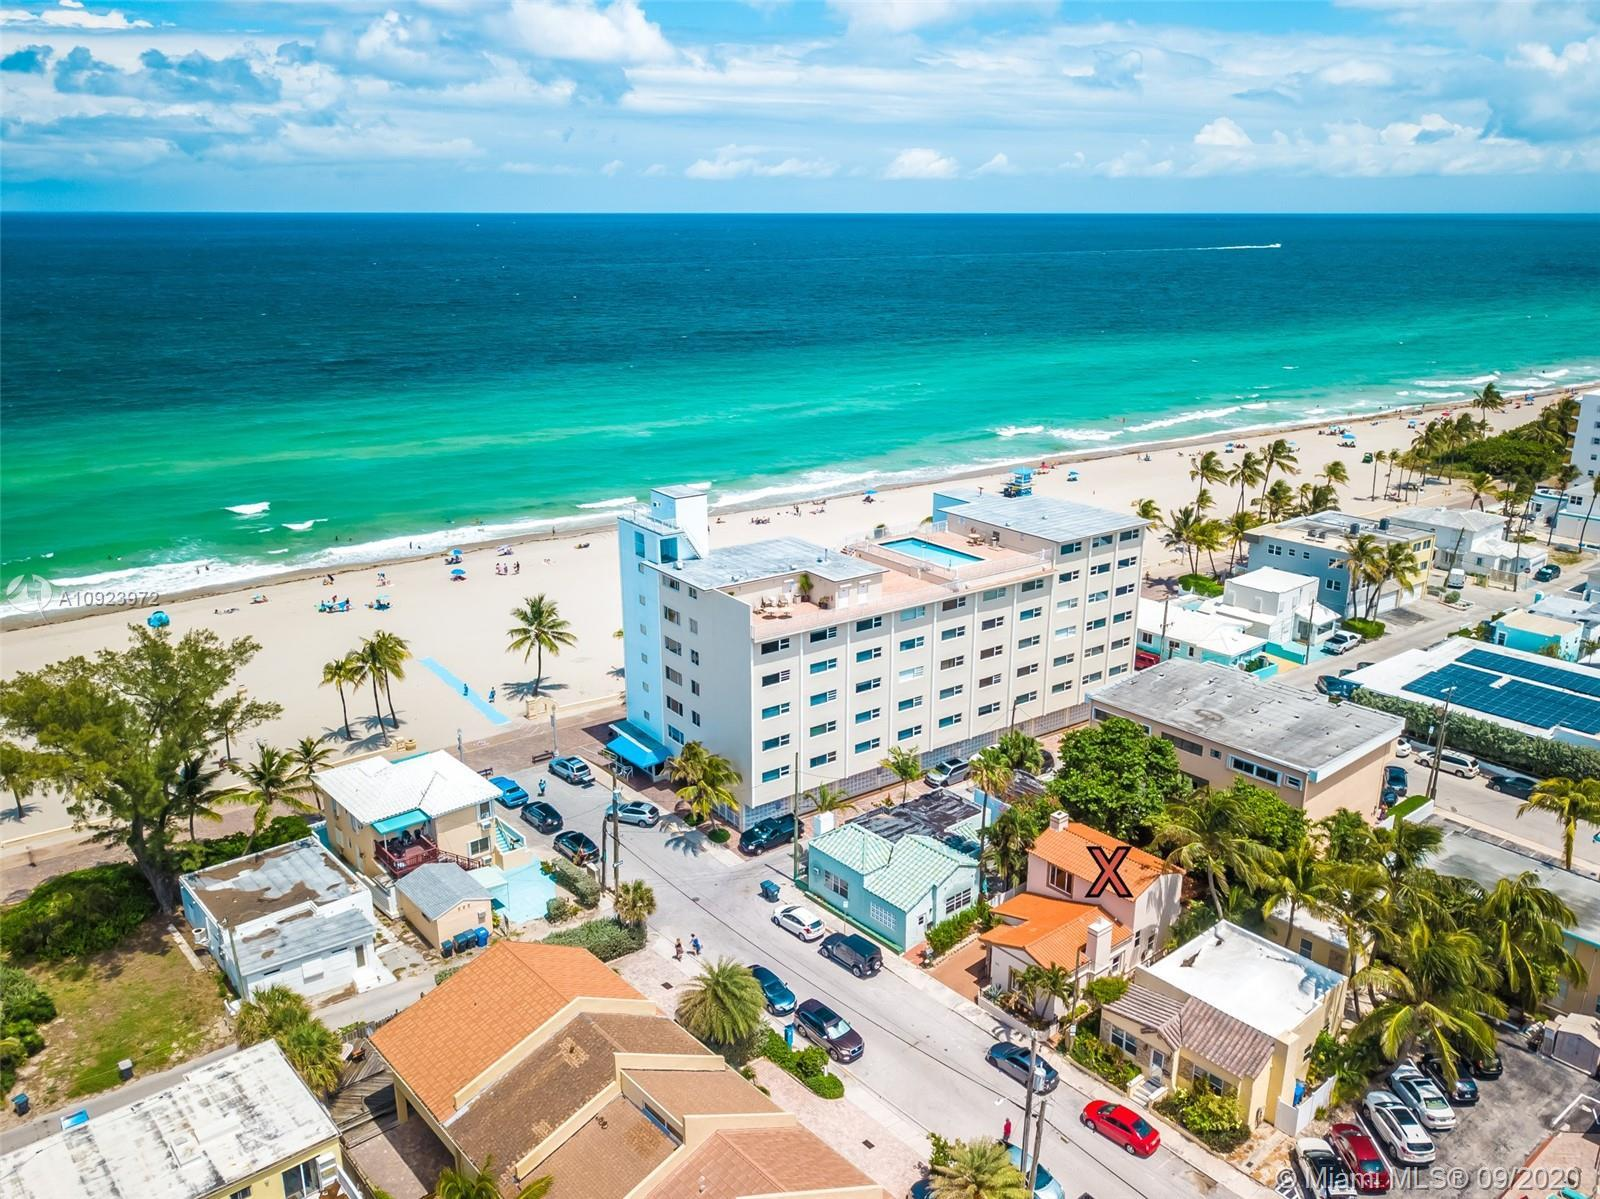 COMPLETELY REMODELED ARTIST'S BEACH HOME. 2 BEDROOMS AND 2 BATHS WITH A STUDIO THAT HAS A PRIVATE EN